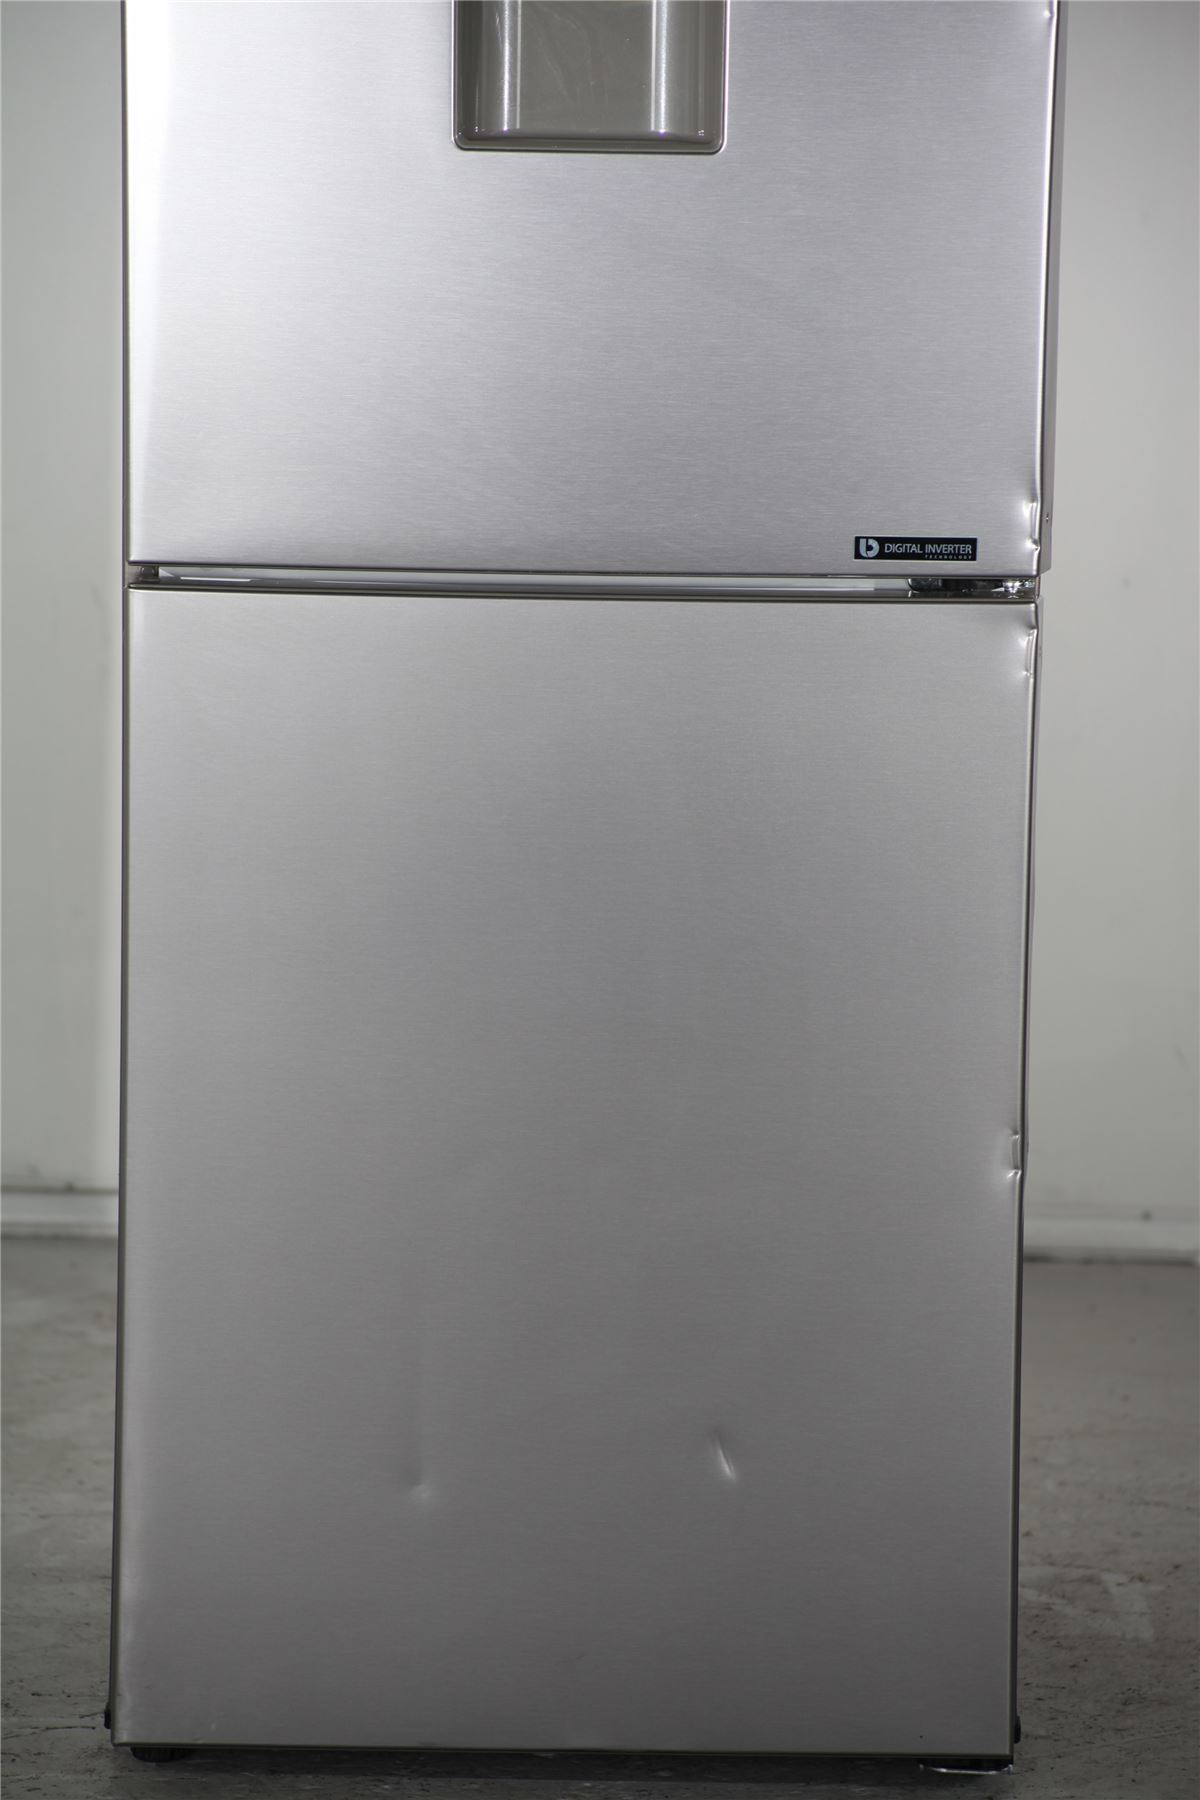 Countertop Ice Maker Edmonton : Edmonton to Denver, Colorado, because of a massive amount of ...